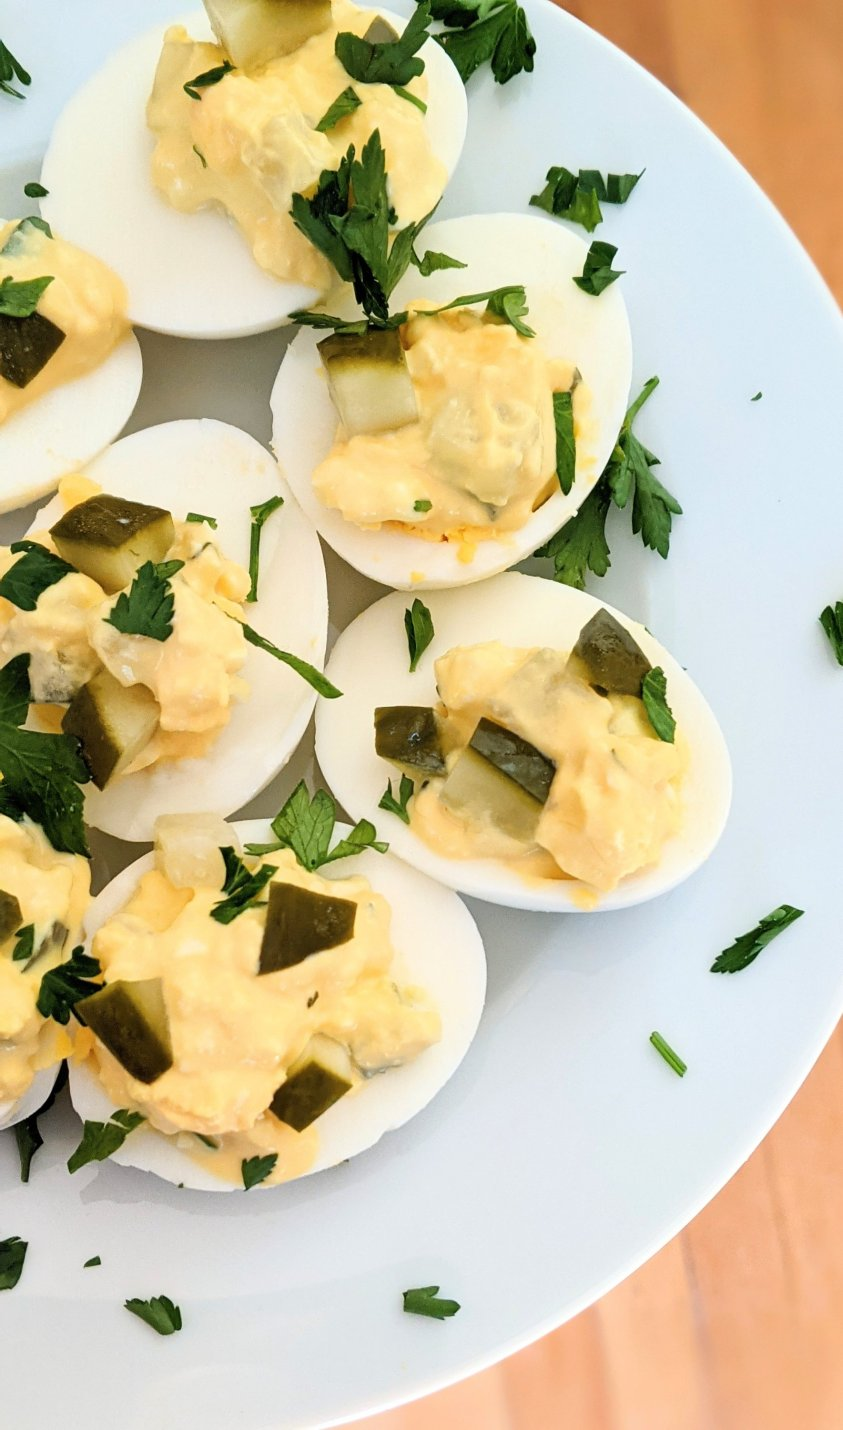 keto vegetarian appetizer recipes low carb meatless side dishes for bbq potluck or party snacks keto low carb no meat recipes deviled eggs with pickles keto